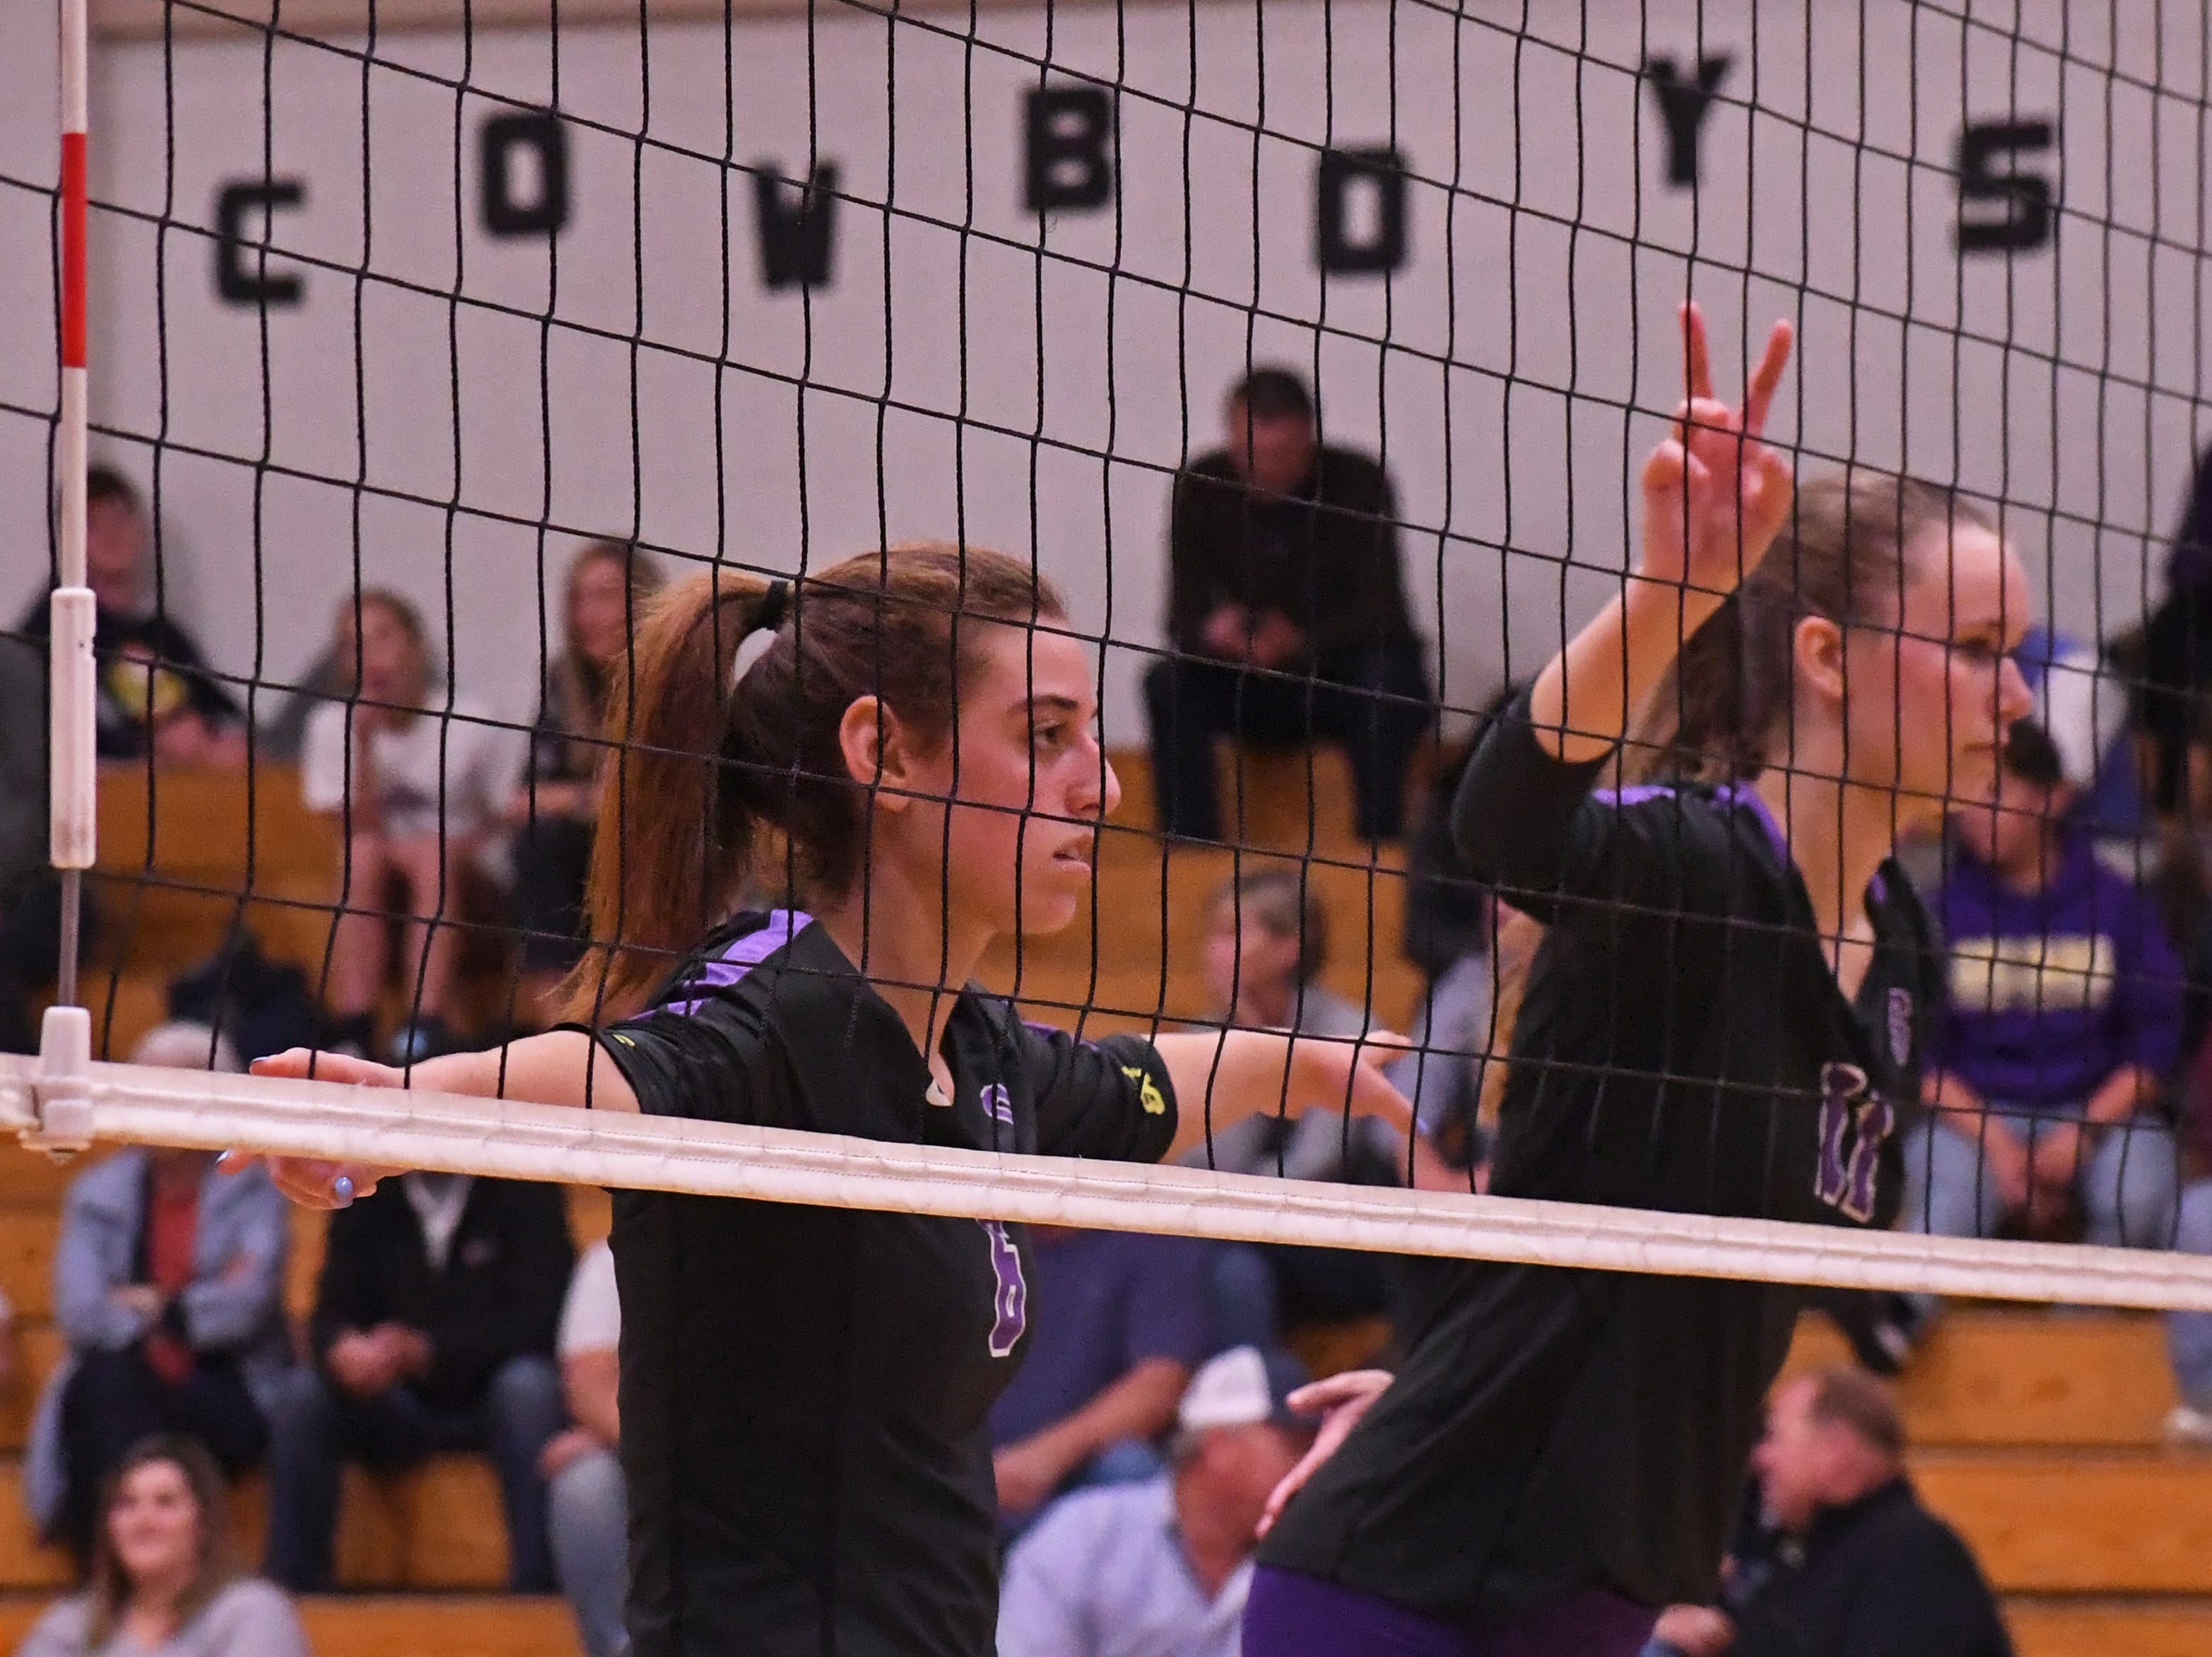 Outside hitter Kylee Moore (6) and middle blocker Savannah Maker (11) wait for Kaila Uota to serve the ball.